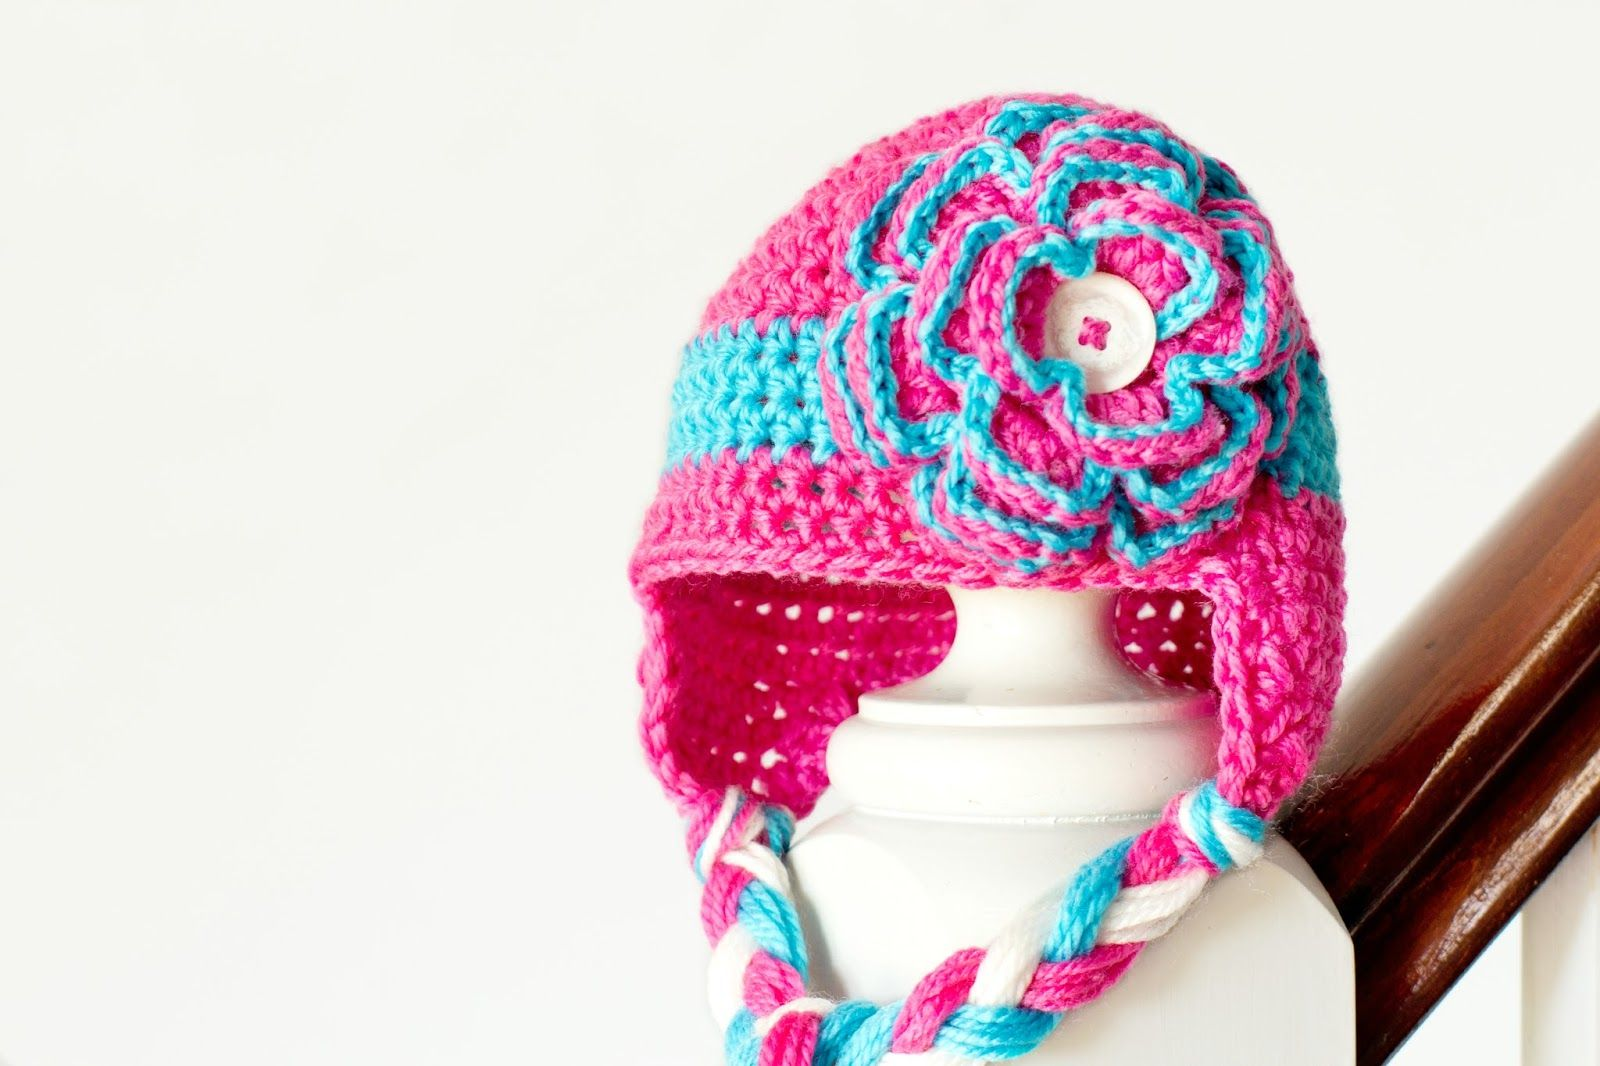 Alli crafts free pattern baby earflap hat 3 months with alli crafts free pattern baby earflap hat 3 months with links for sizes premie to toddler crochet for babies bankloansurffo Images